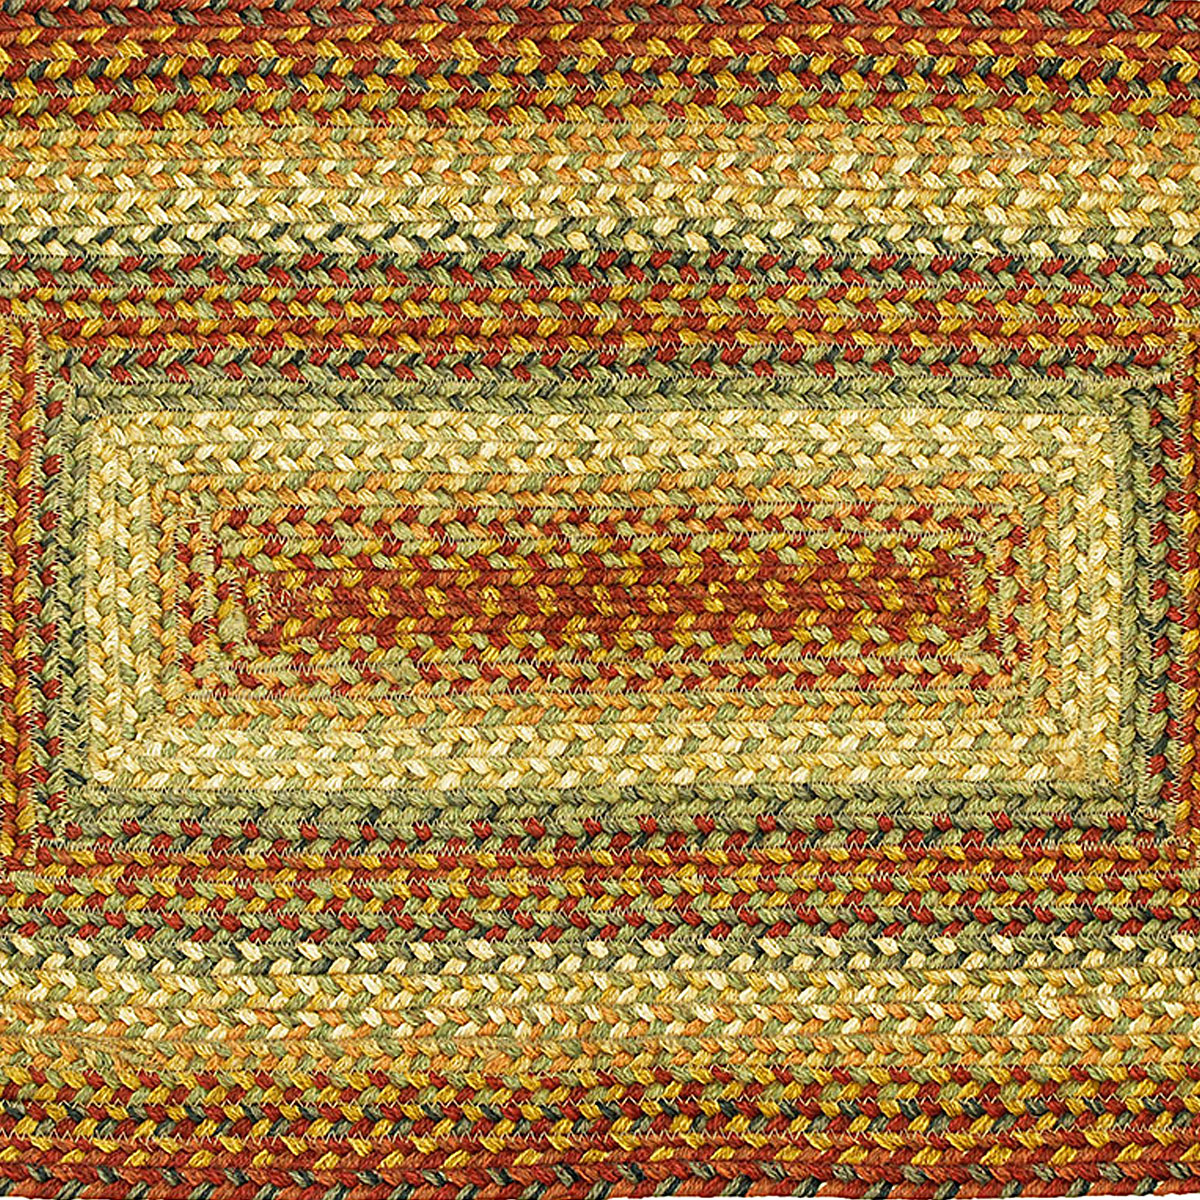 Primitive Jute Braided Area Rugs Oval Rectangle 20x30 8x10